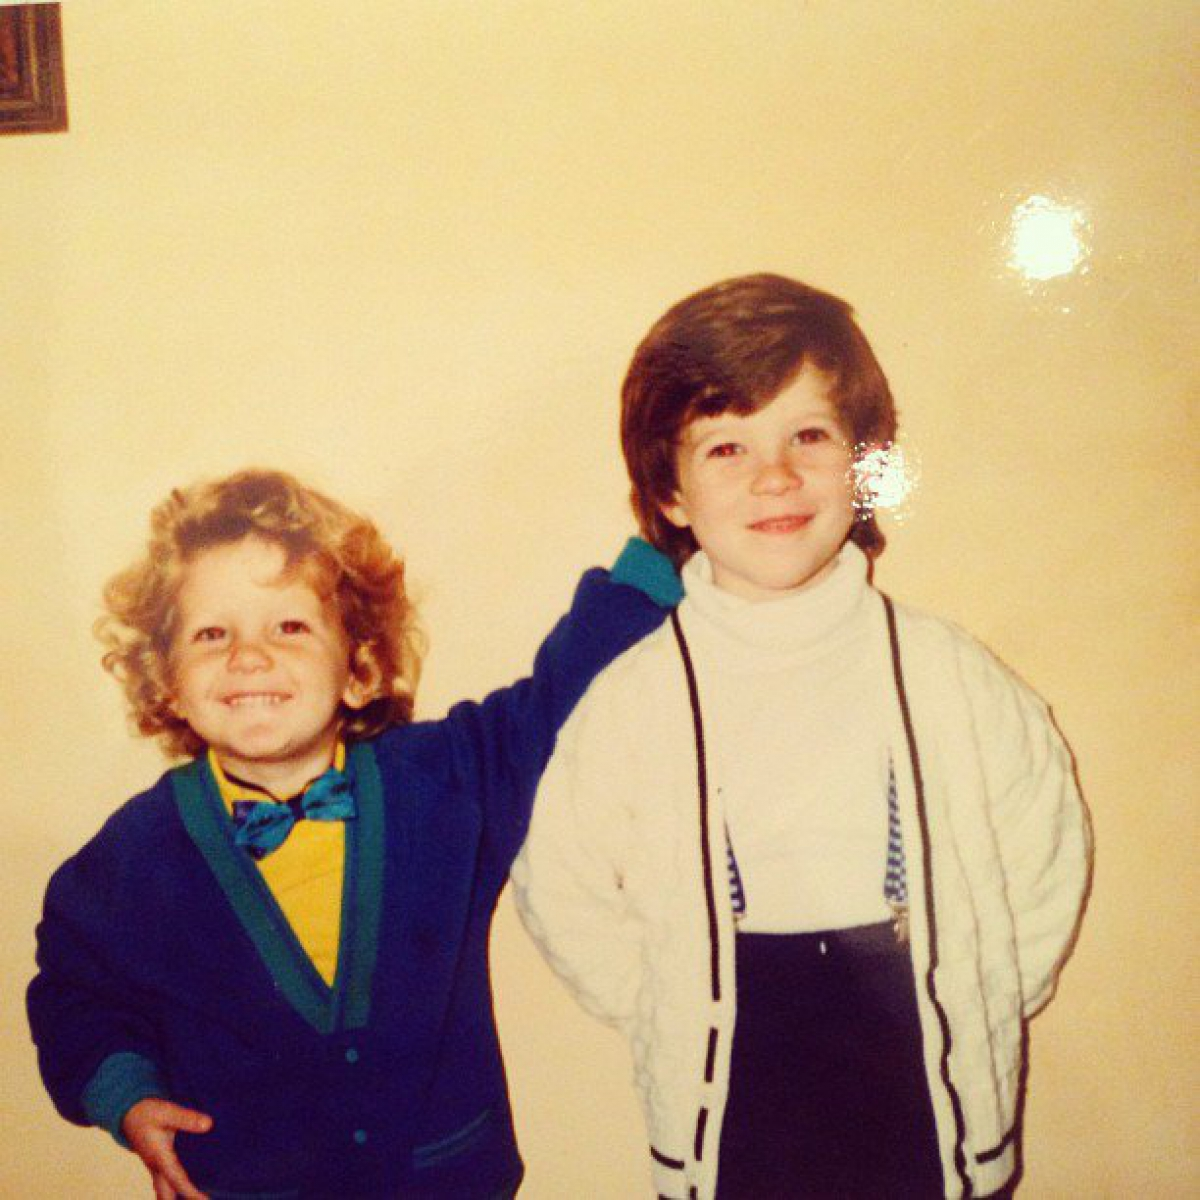 Dillon Francis childhood photo one at edm.com